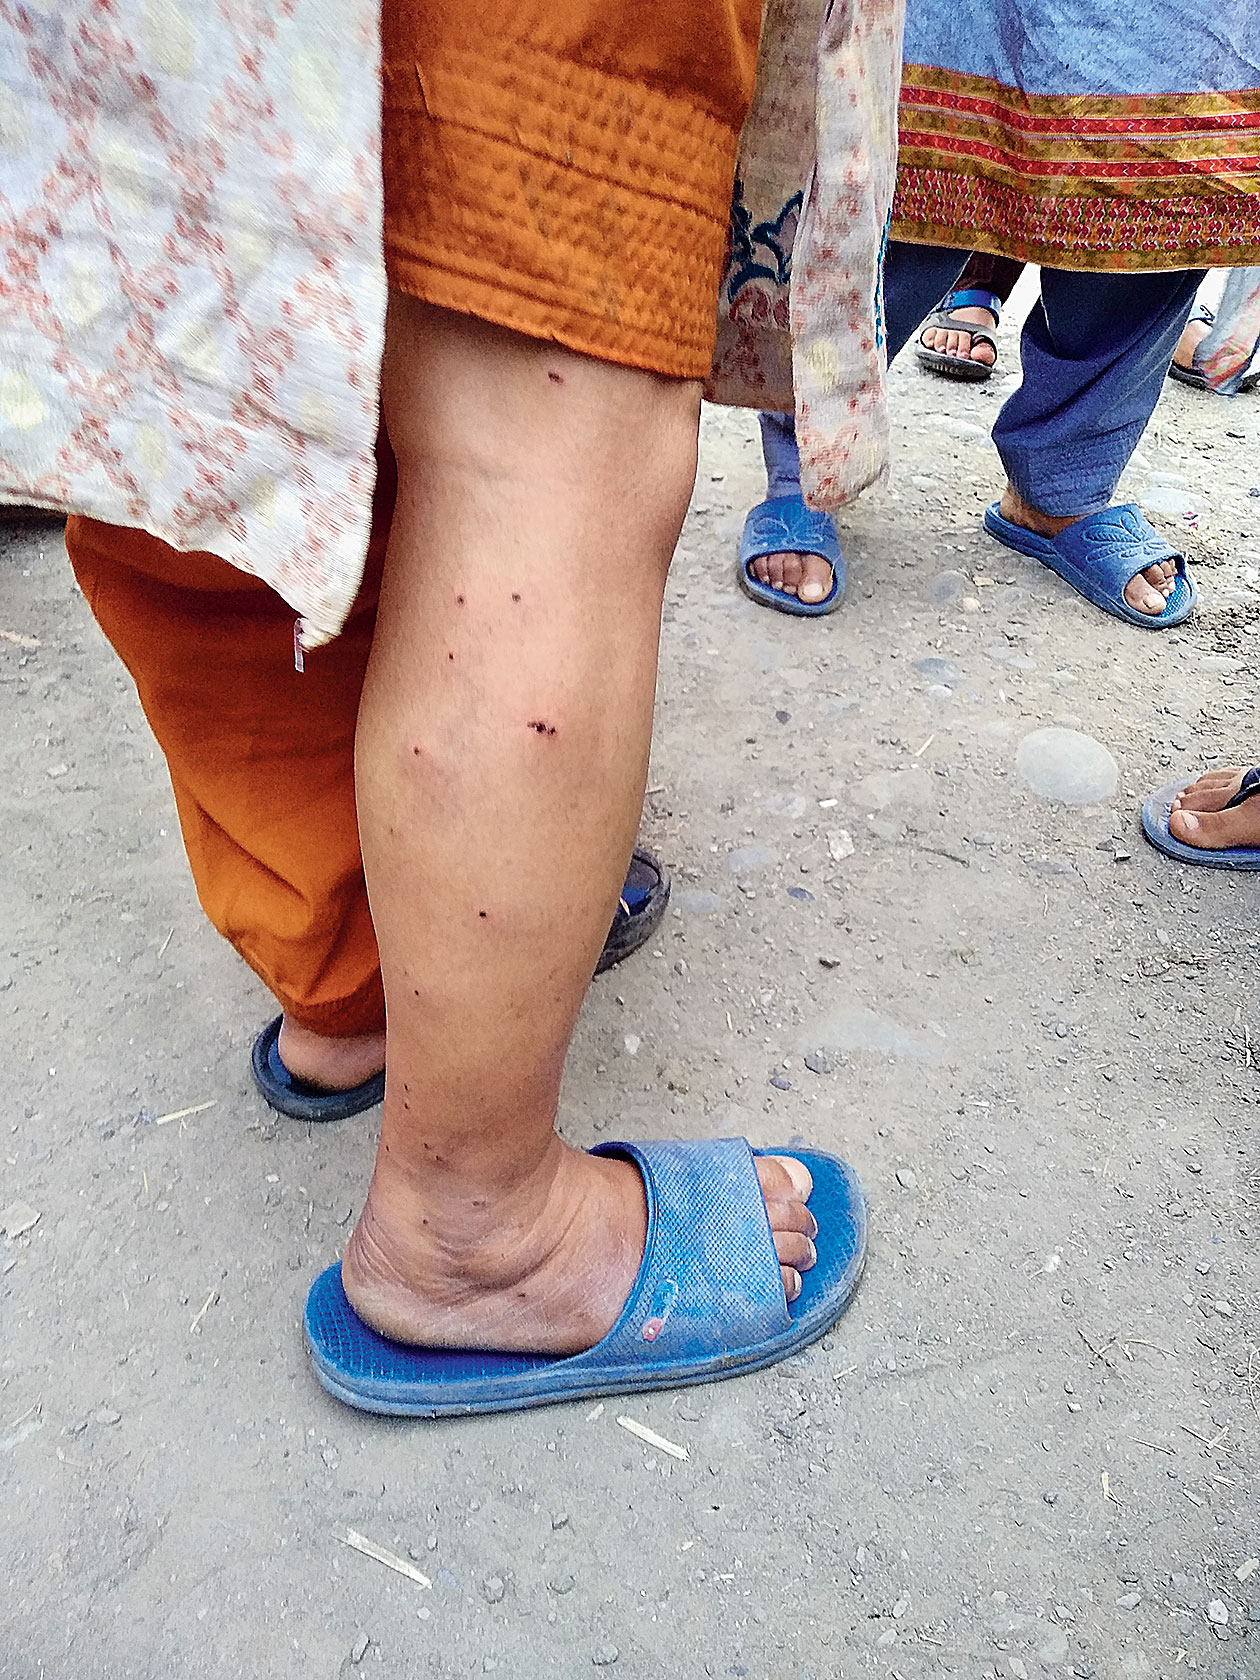 A woman in Shanpora shows her pellet wounds